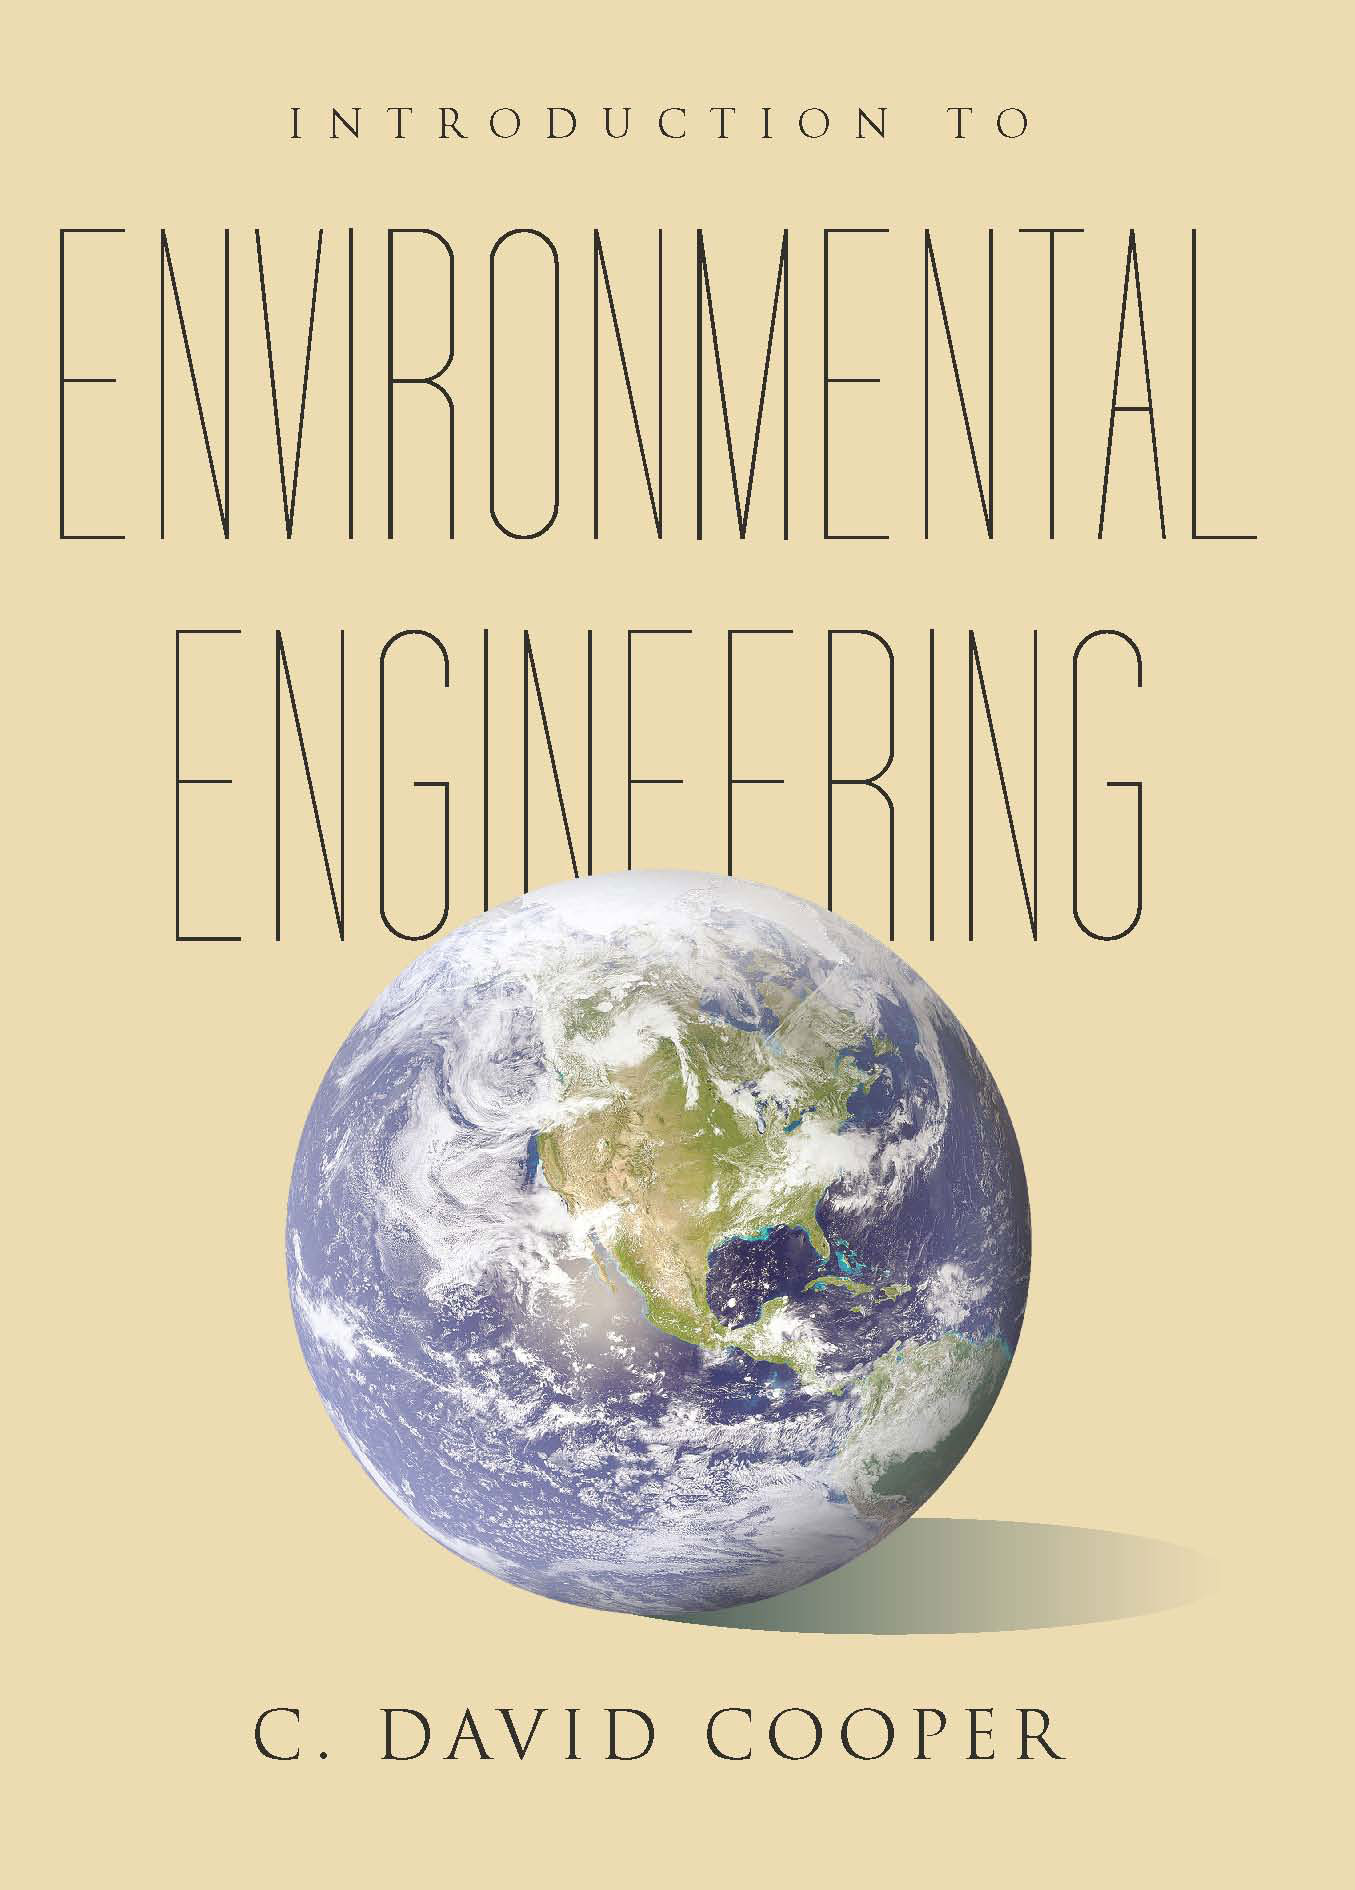 Introduction to Environmental Engineering:  by C. David Cooper